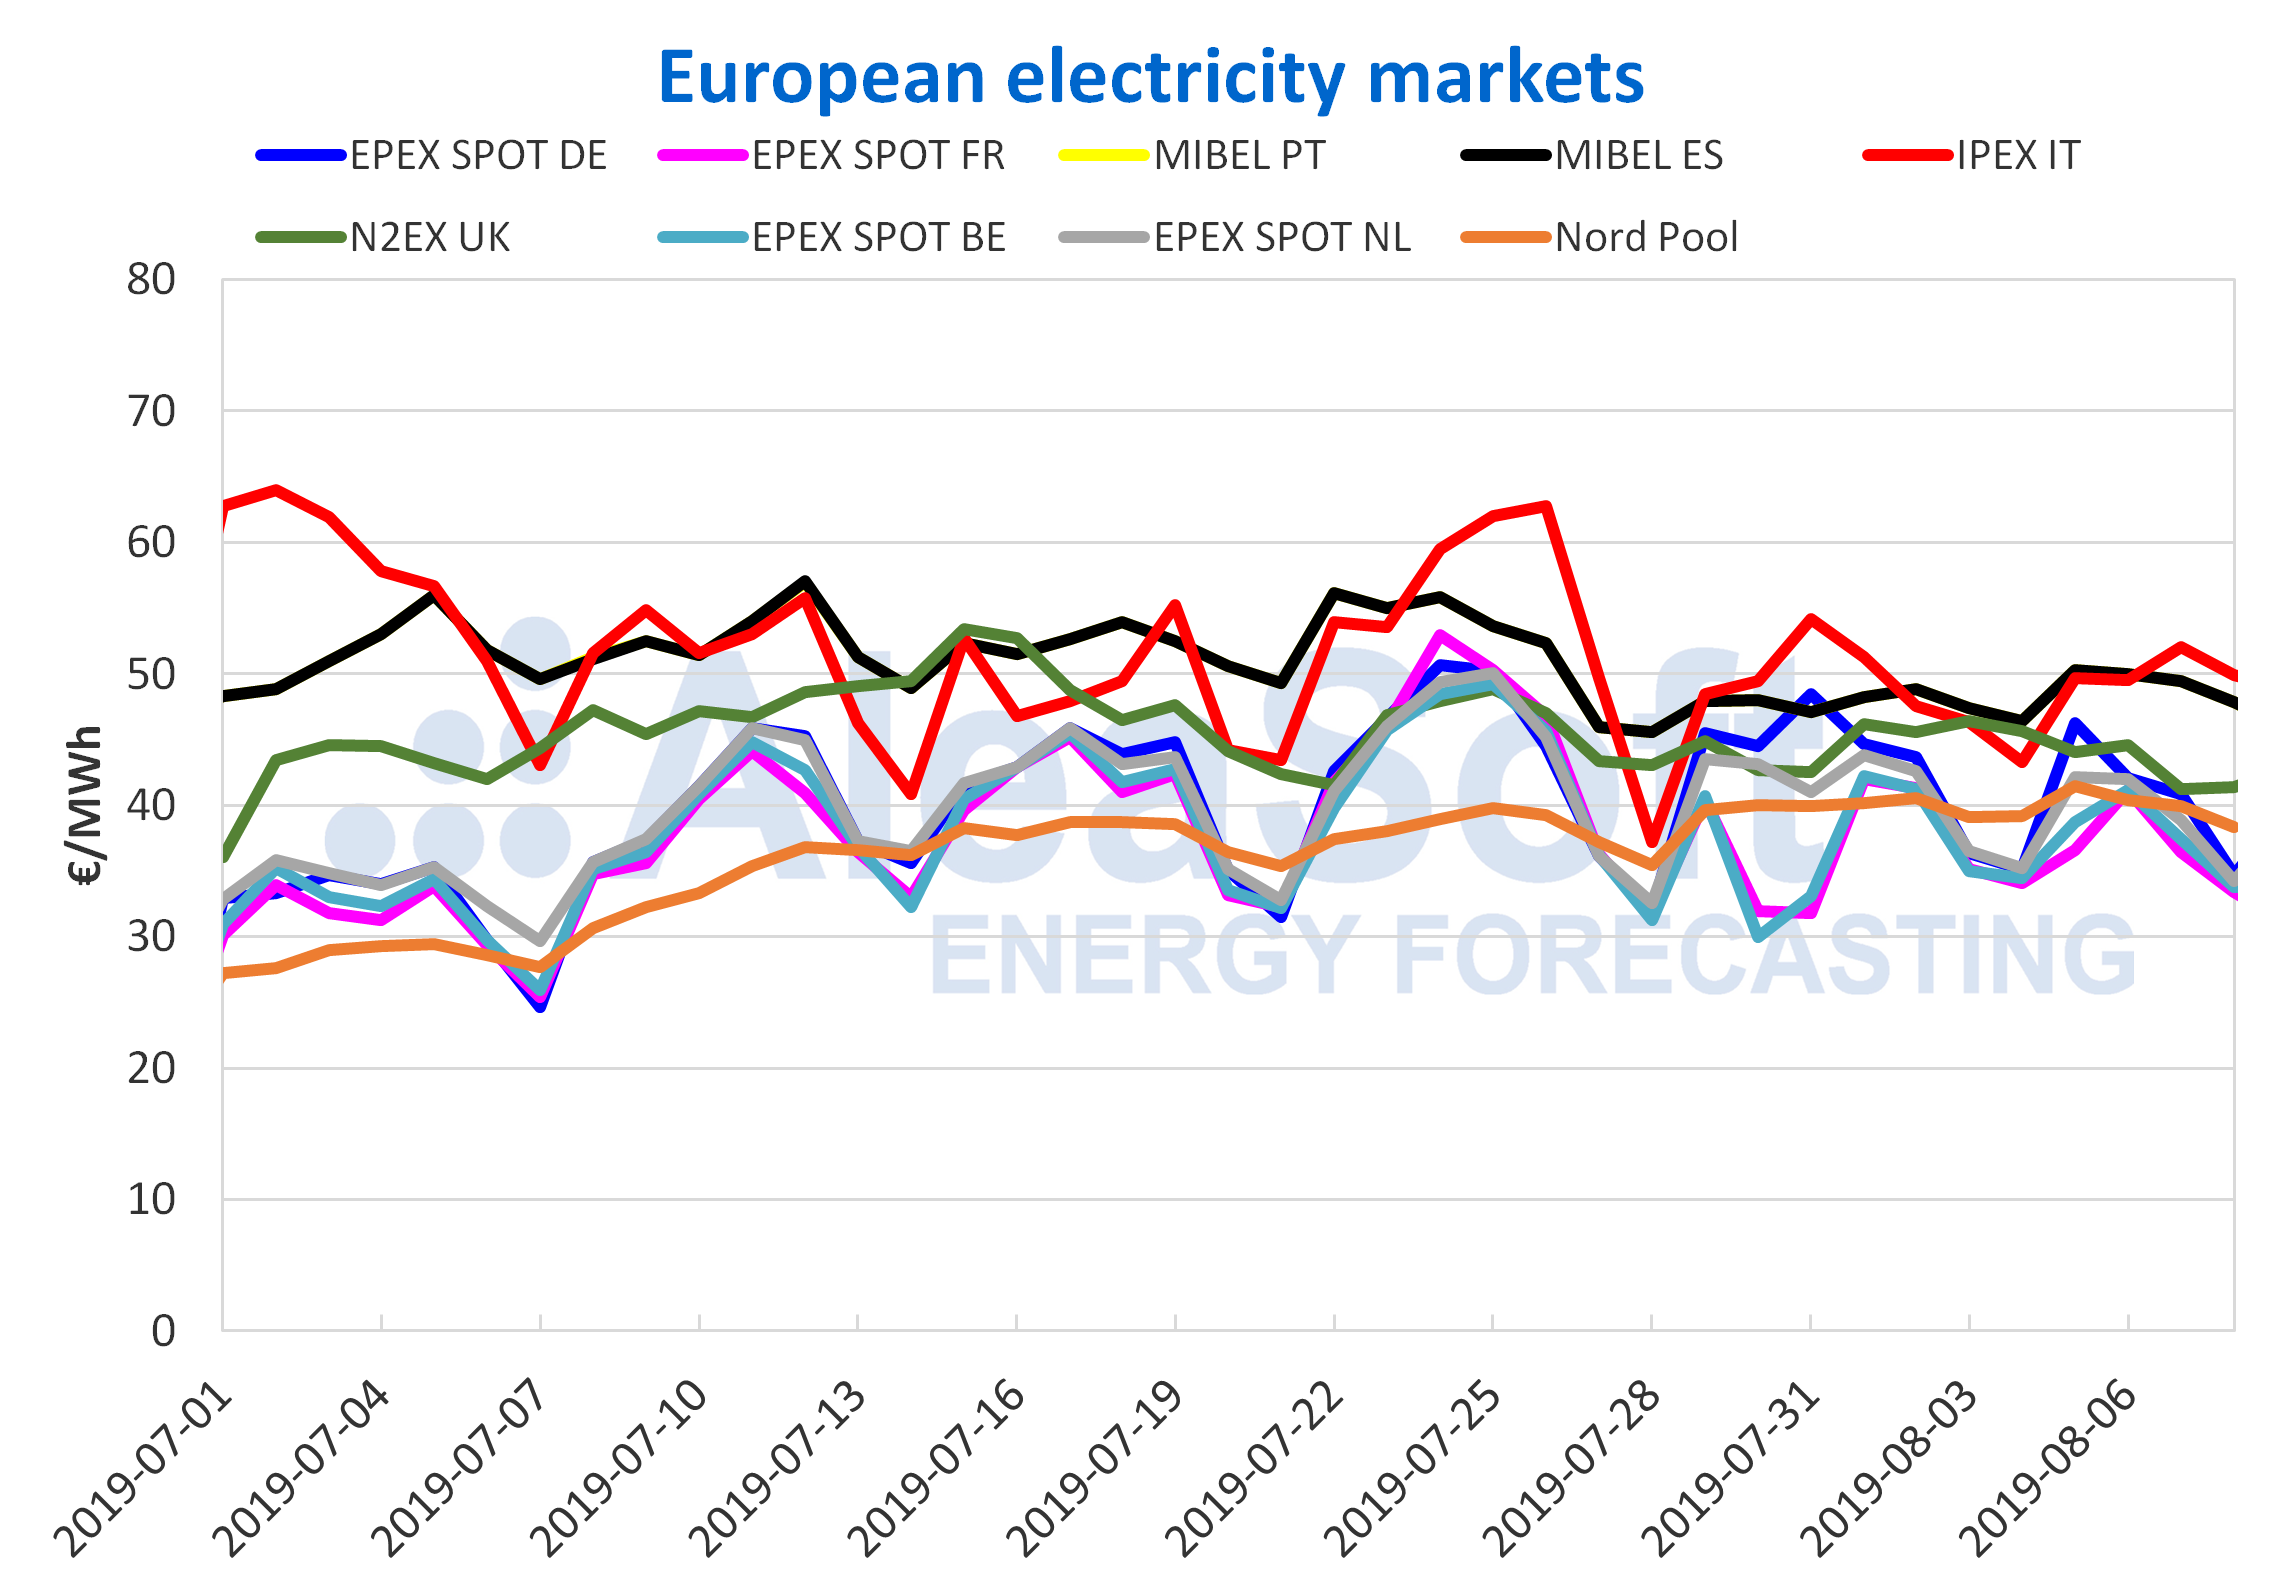 AleaSoft - European electricity market prices